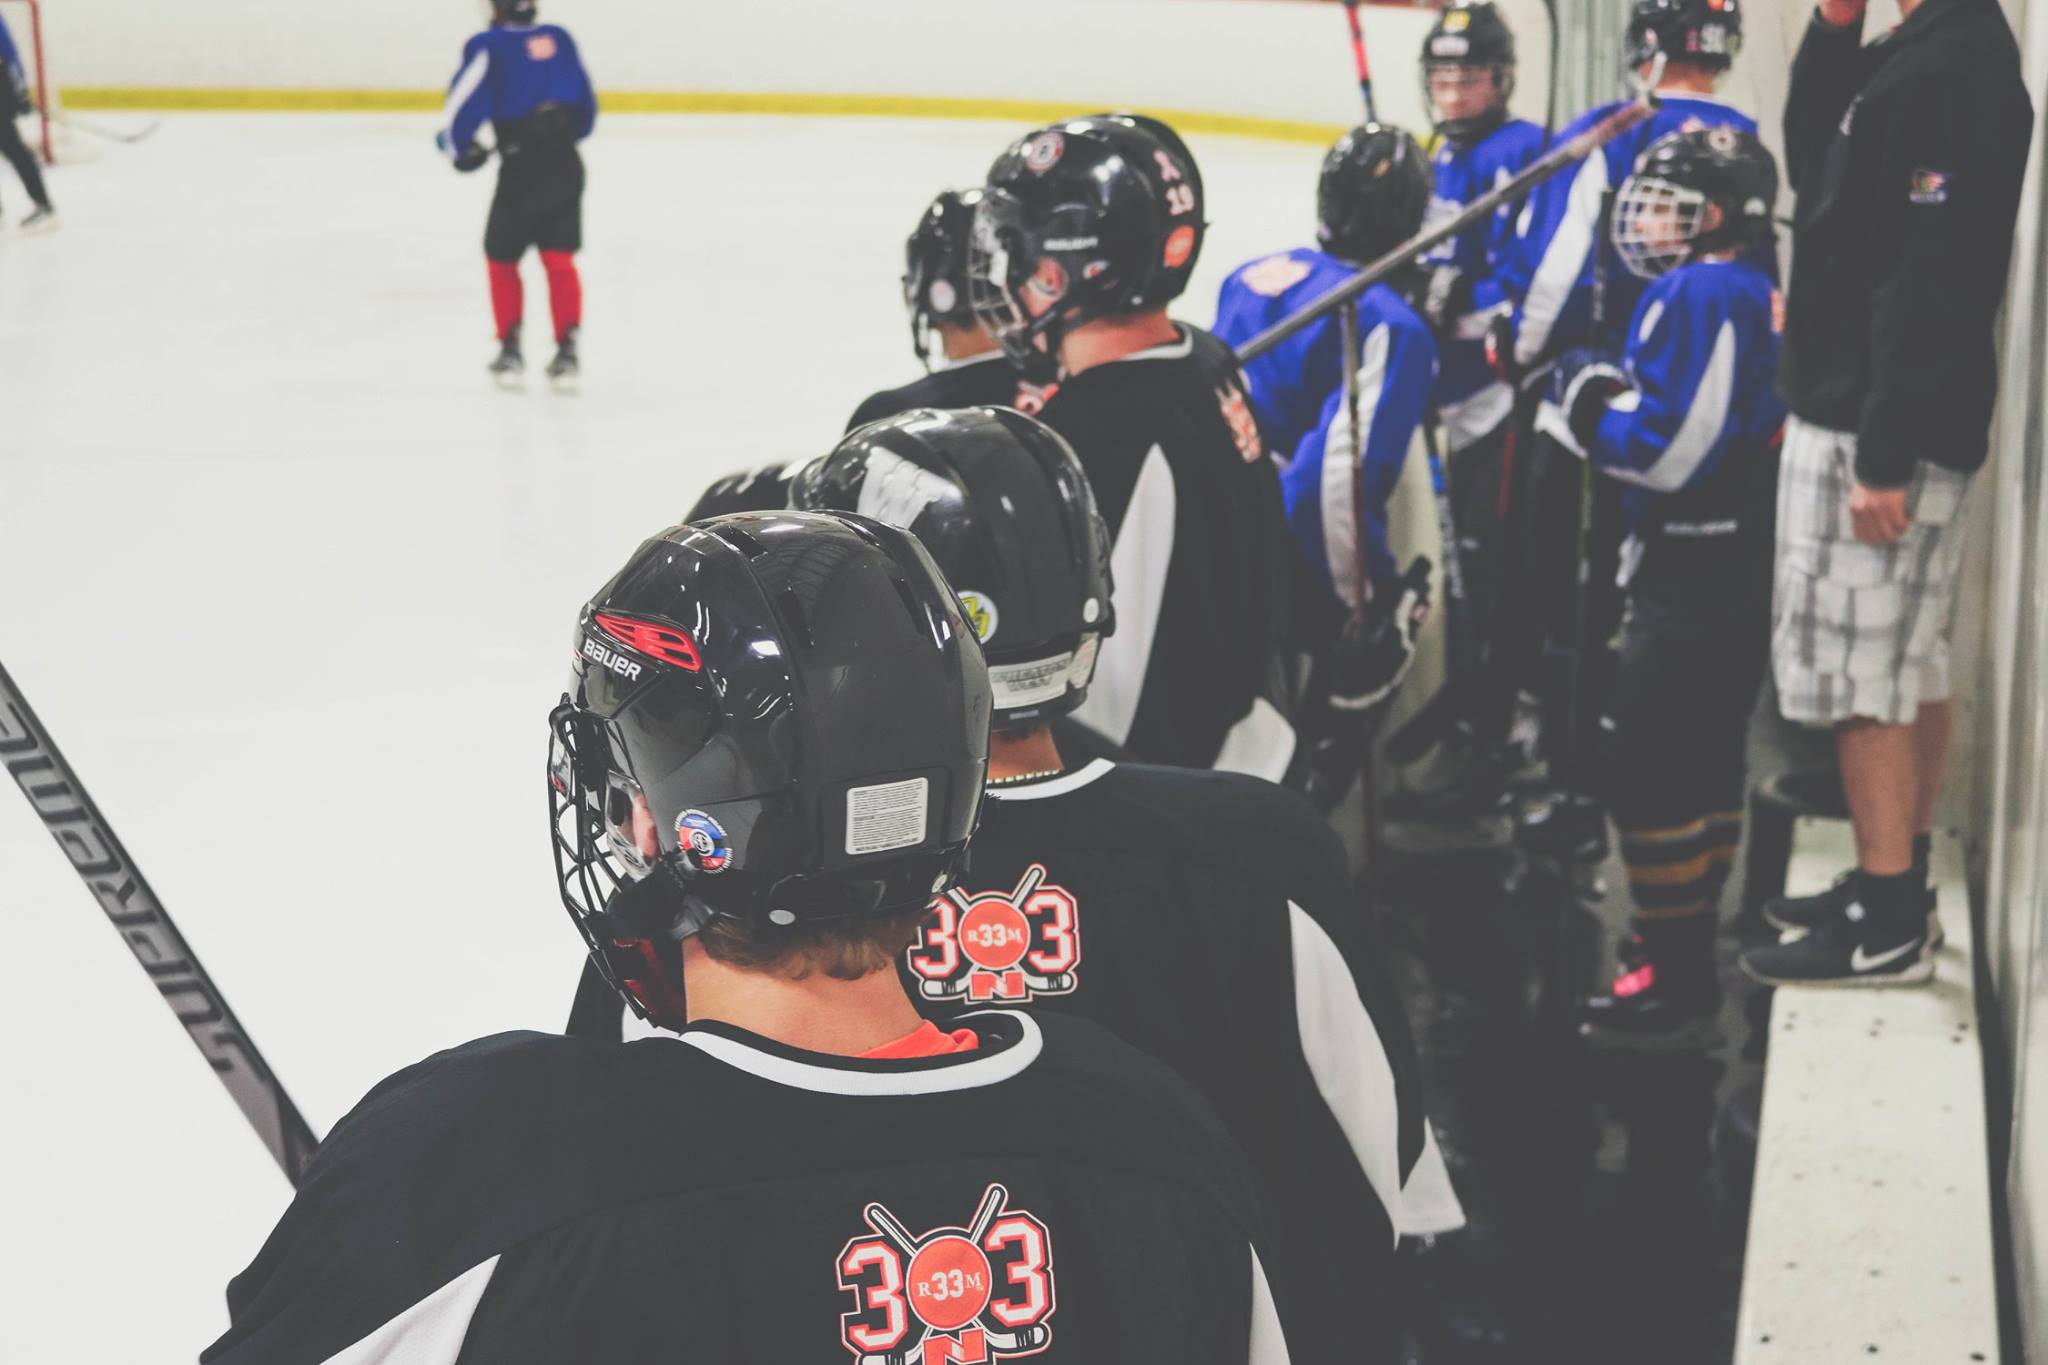 3v3 Youth TOUGH Hockey Tournament